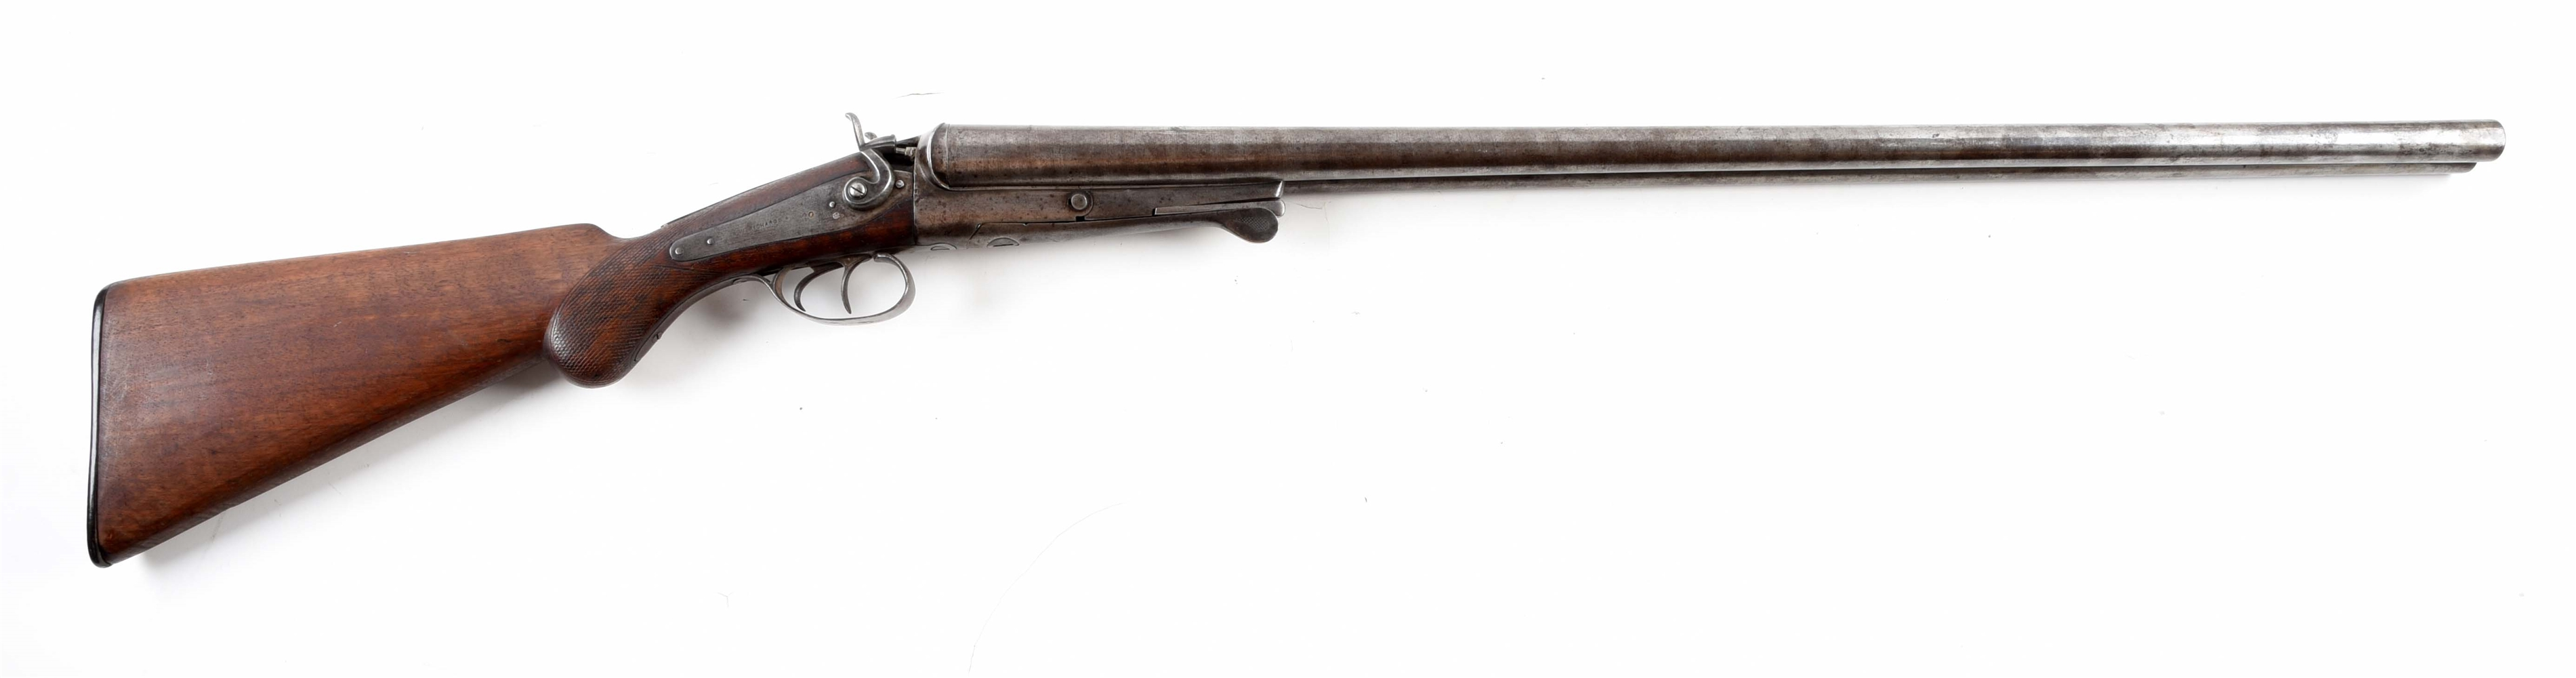 "(A) BELGIAN BACK ACTION LOCK UNDERLEVER SIDE BY SIDE SHOTGUN MARKED ""W. RICHARDS."""